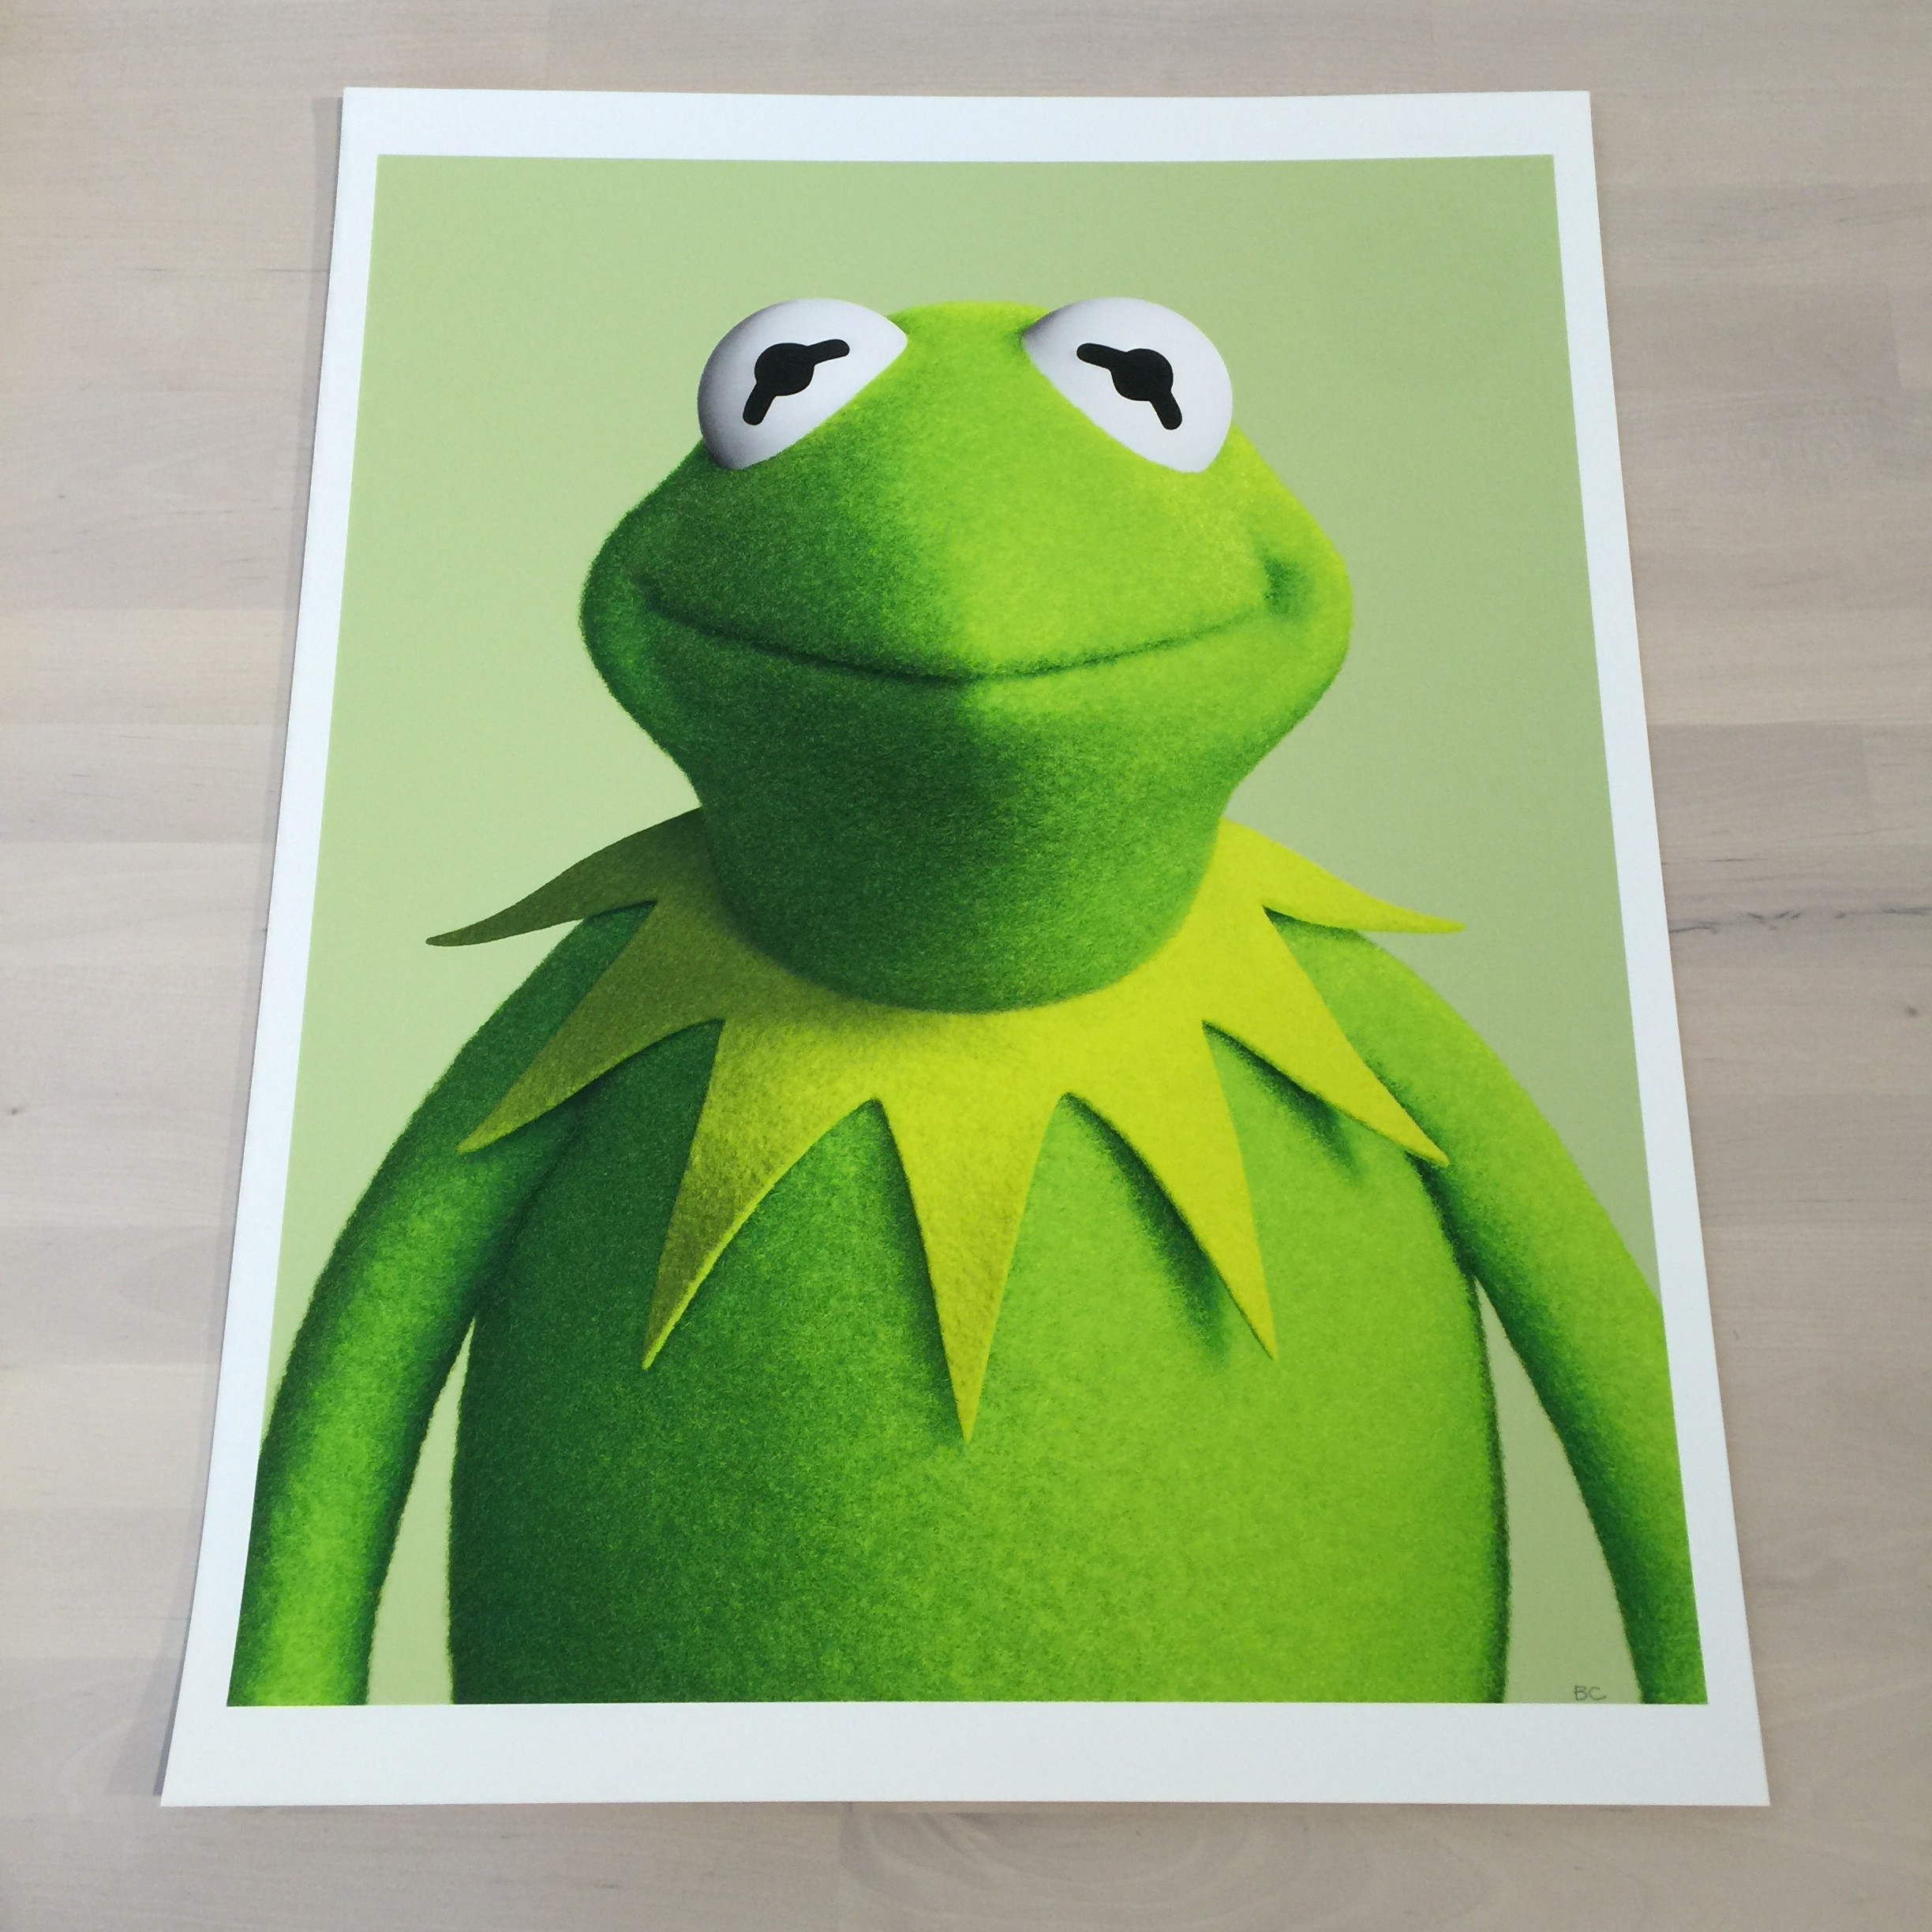 Frog pictures of kermit the